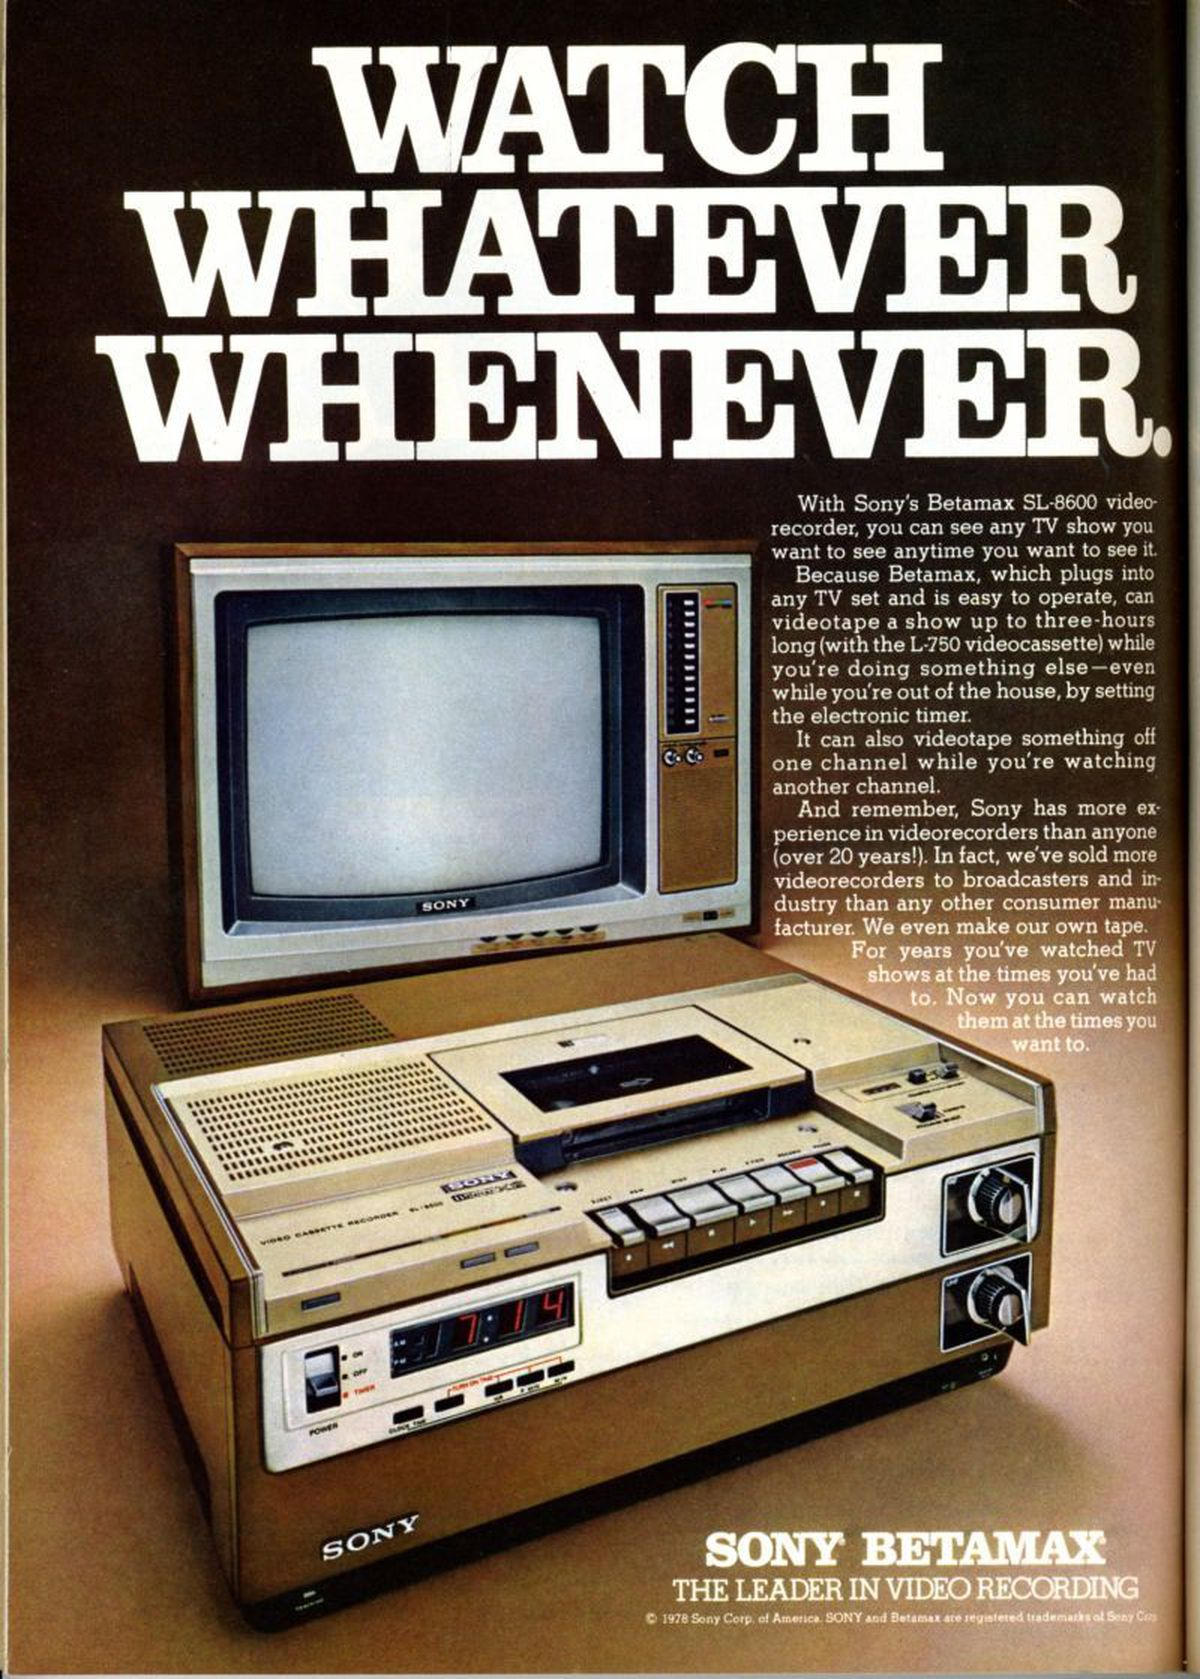 Some people are still getting to grips with the Sony Betamax